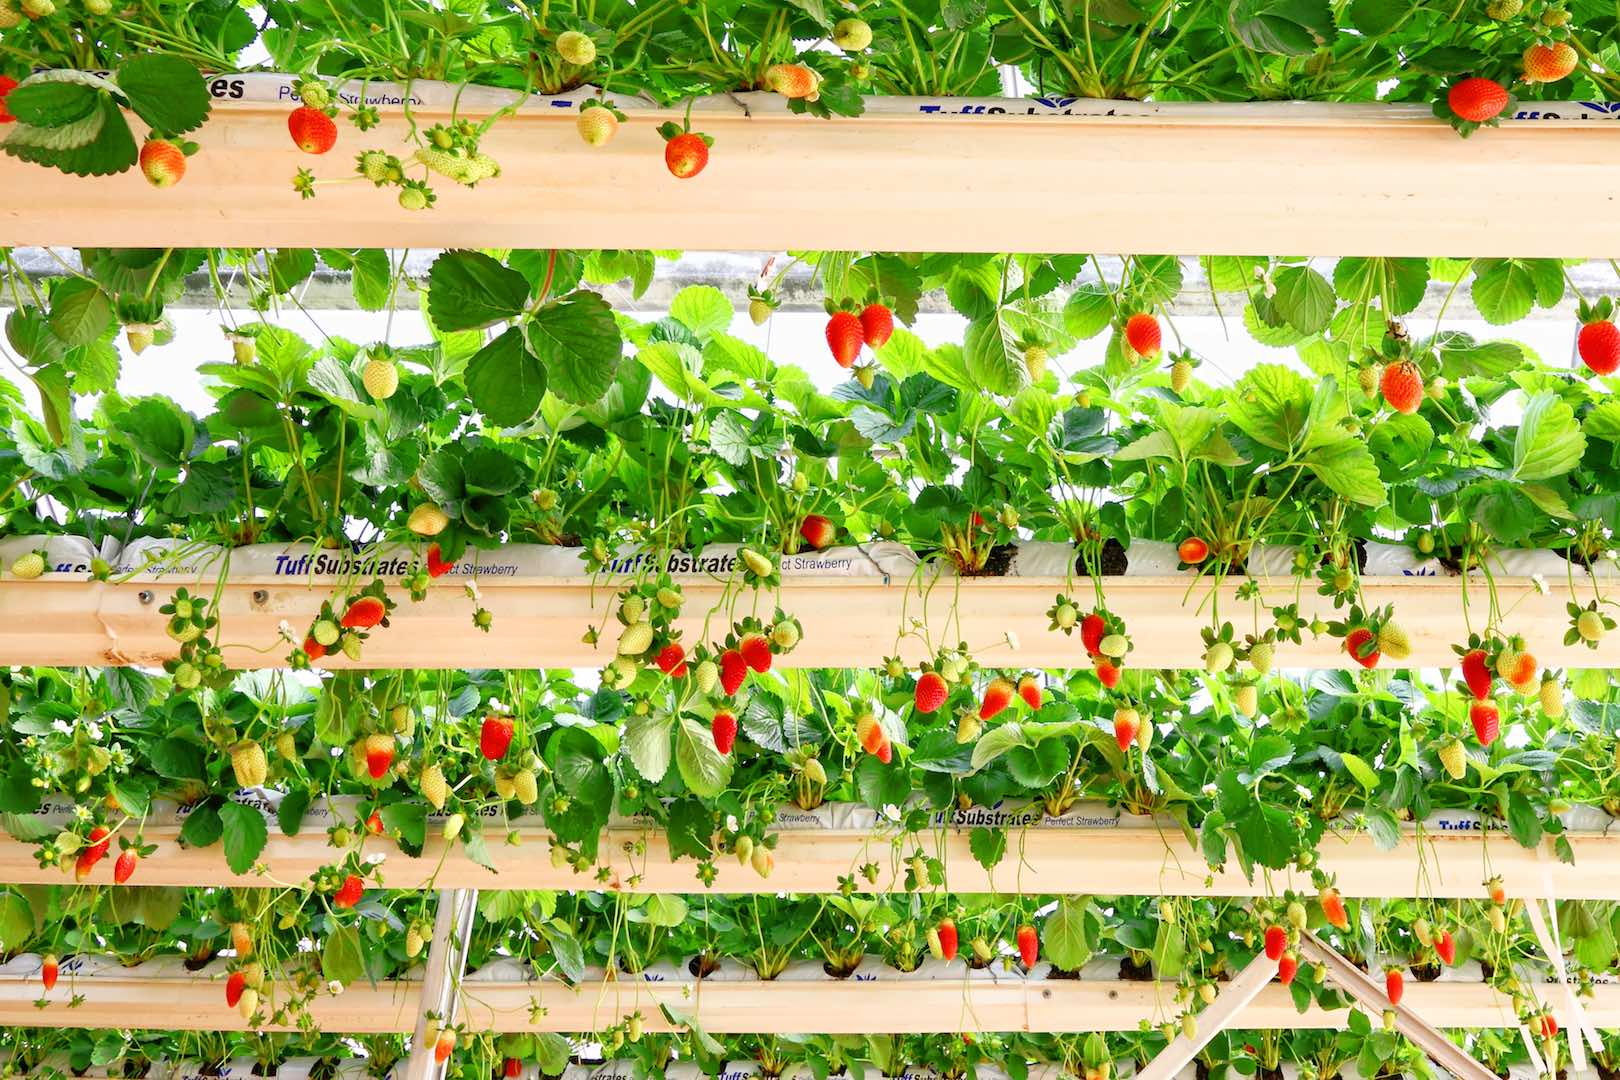 Hydroponics_Cultivate Food Without Soil